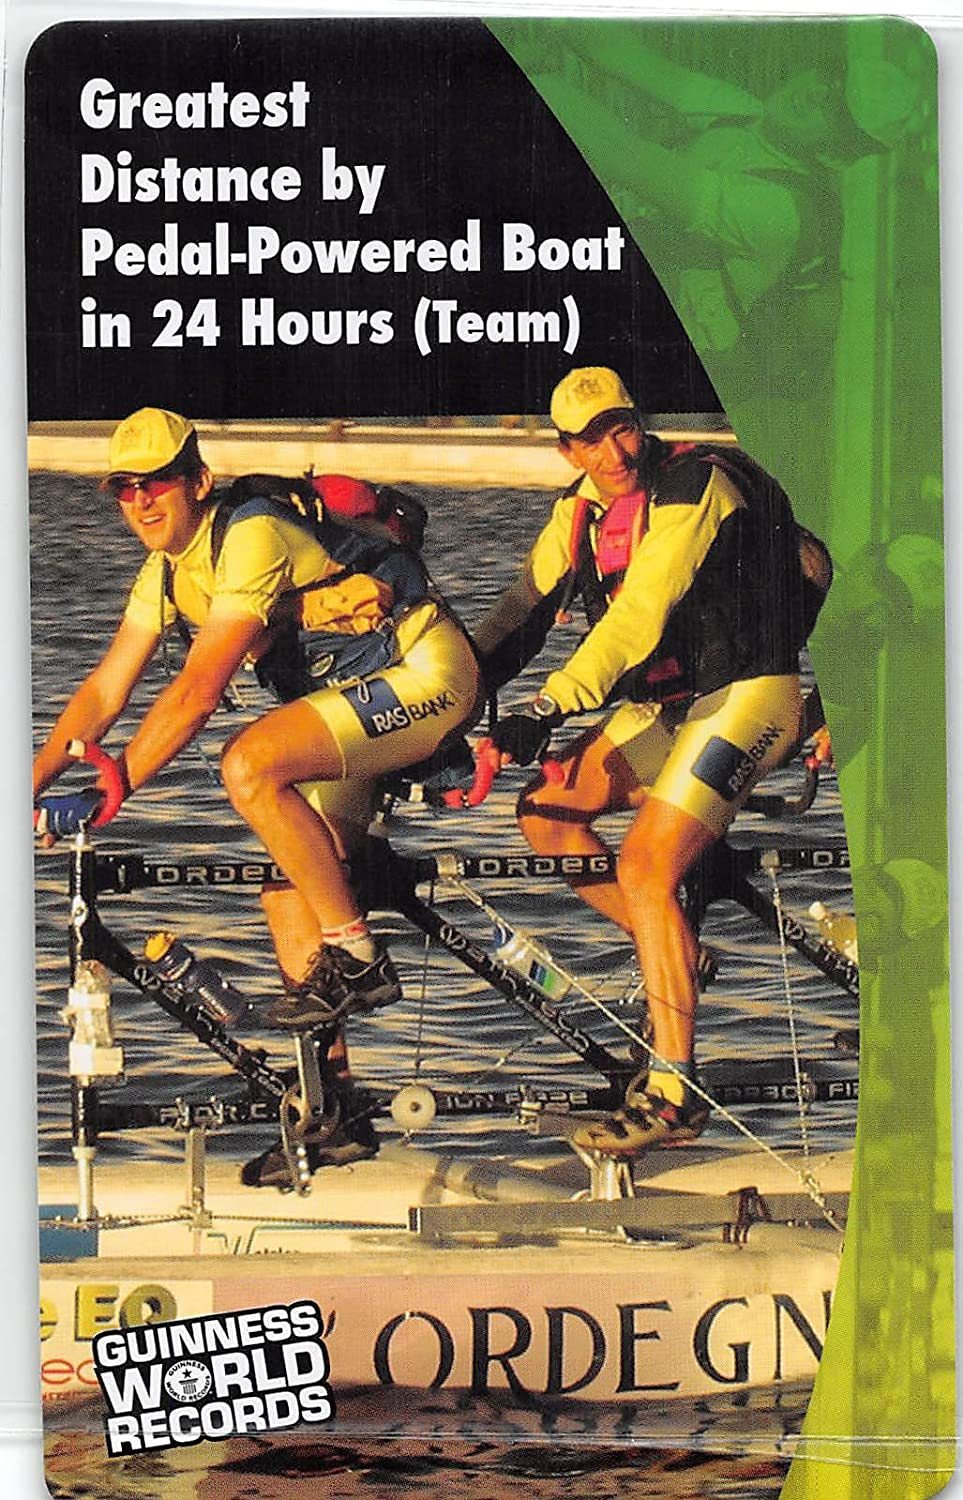 Greatest Distance by Pedal-Powered Boat - Trieste Waterbike Team 2011 Guinness World Records Super Sports Card (NM-MT)